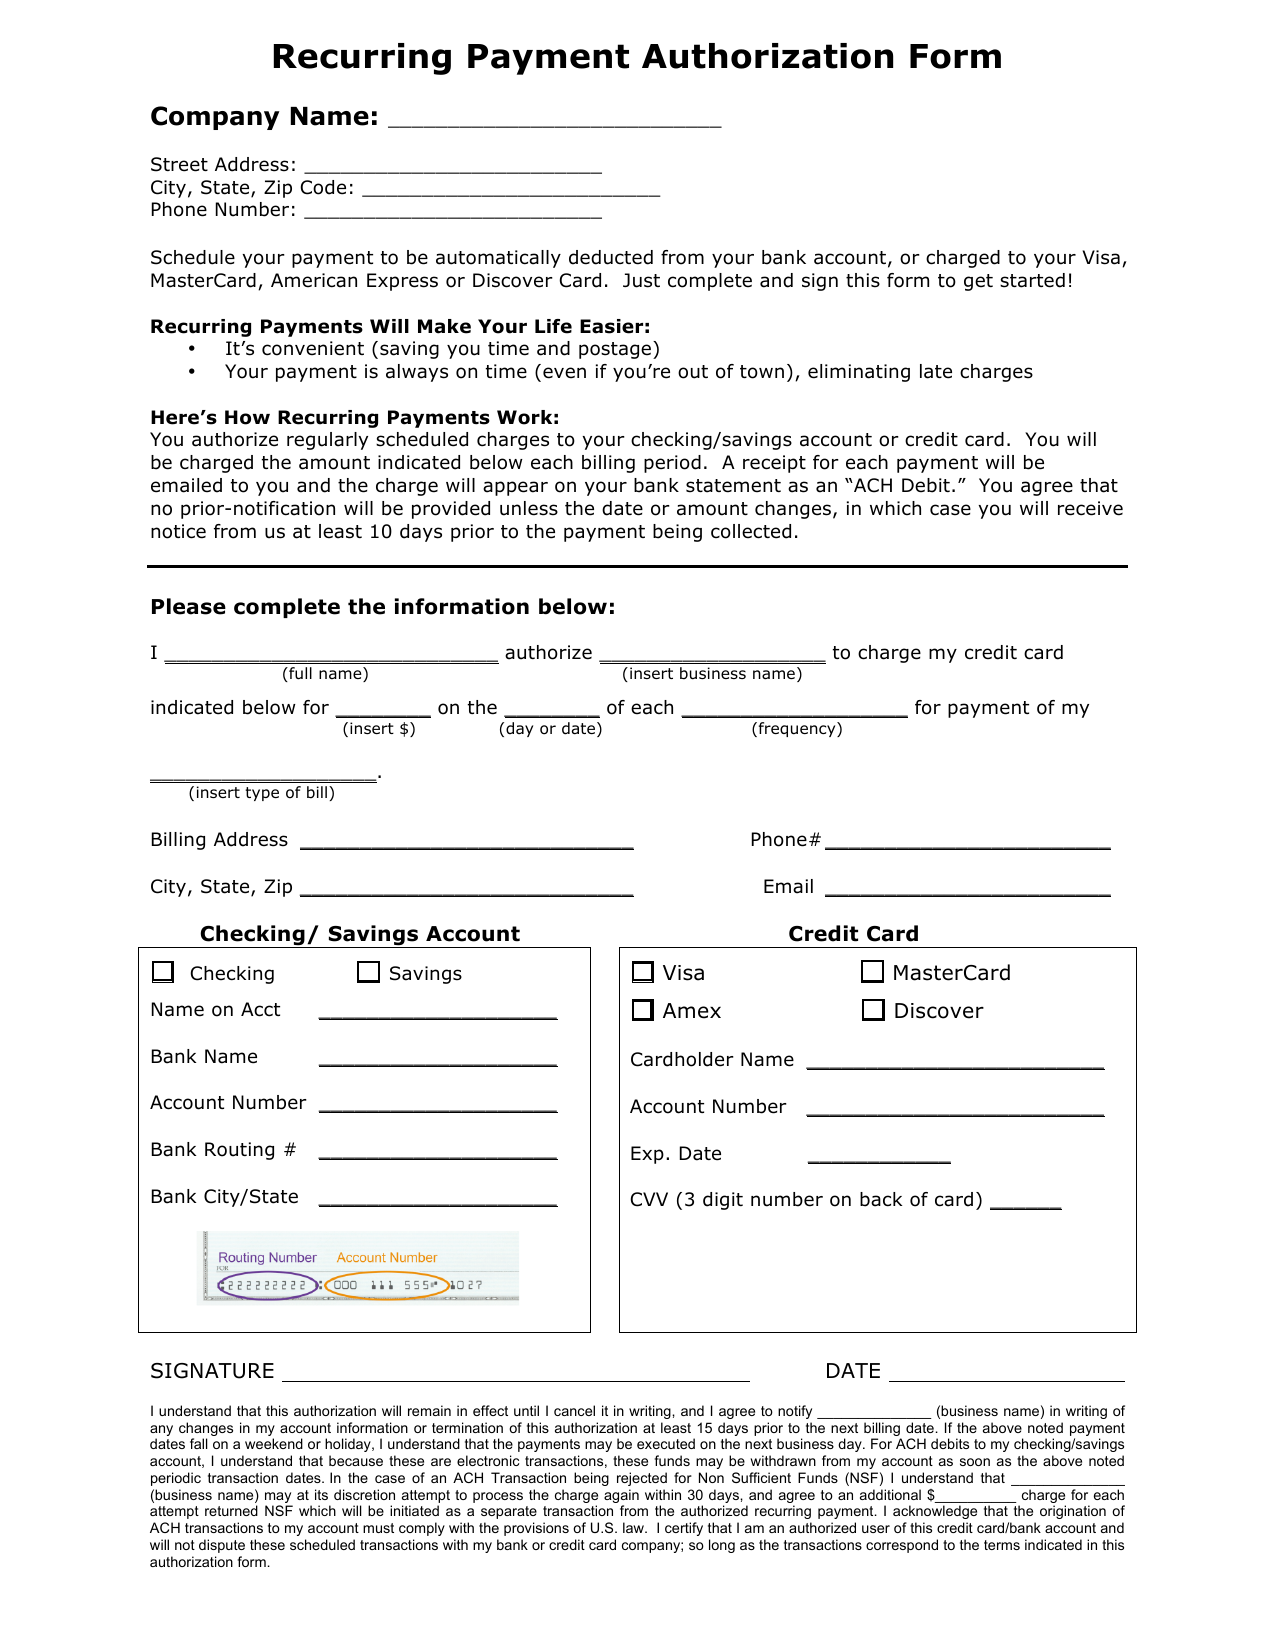 Download recurring payment authorization form template credit card recurring payment authorization form template credit card ach colourmoves